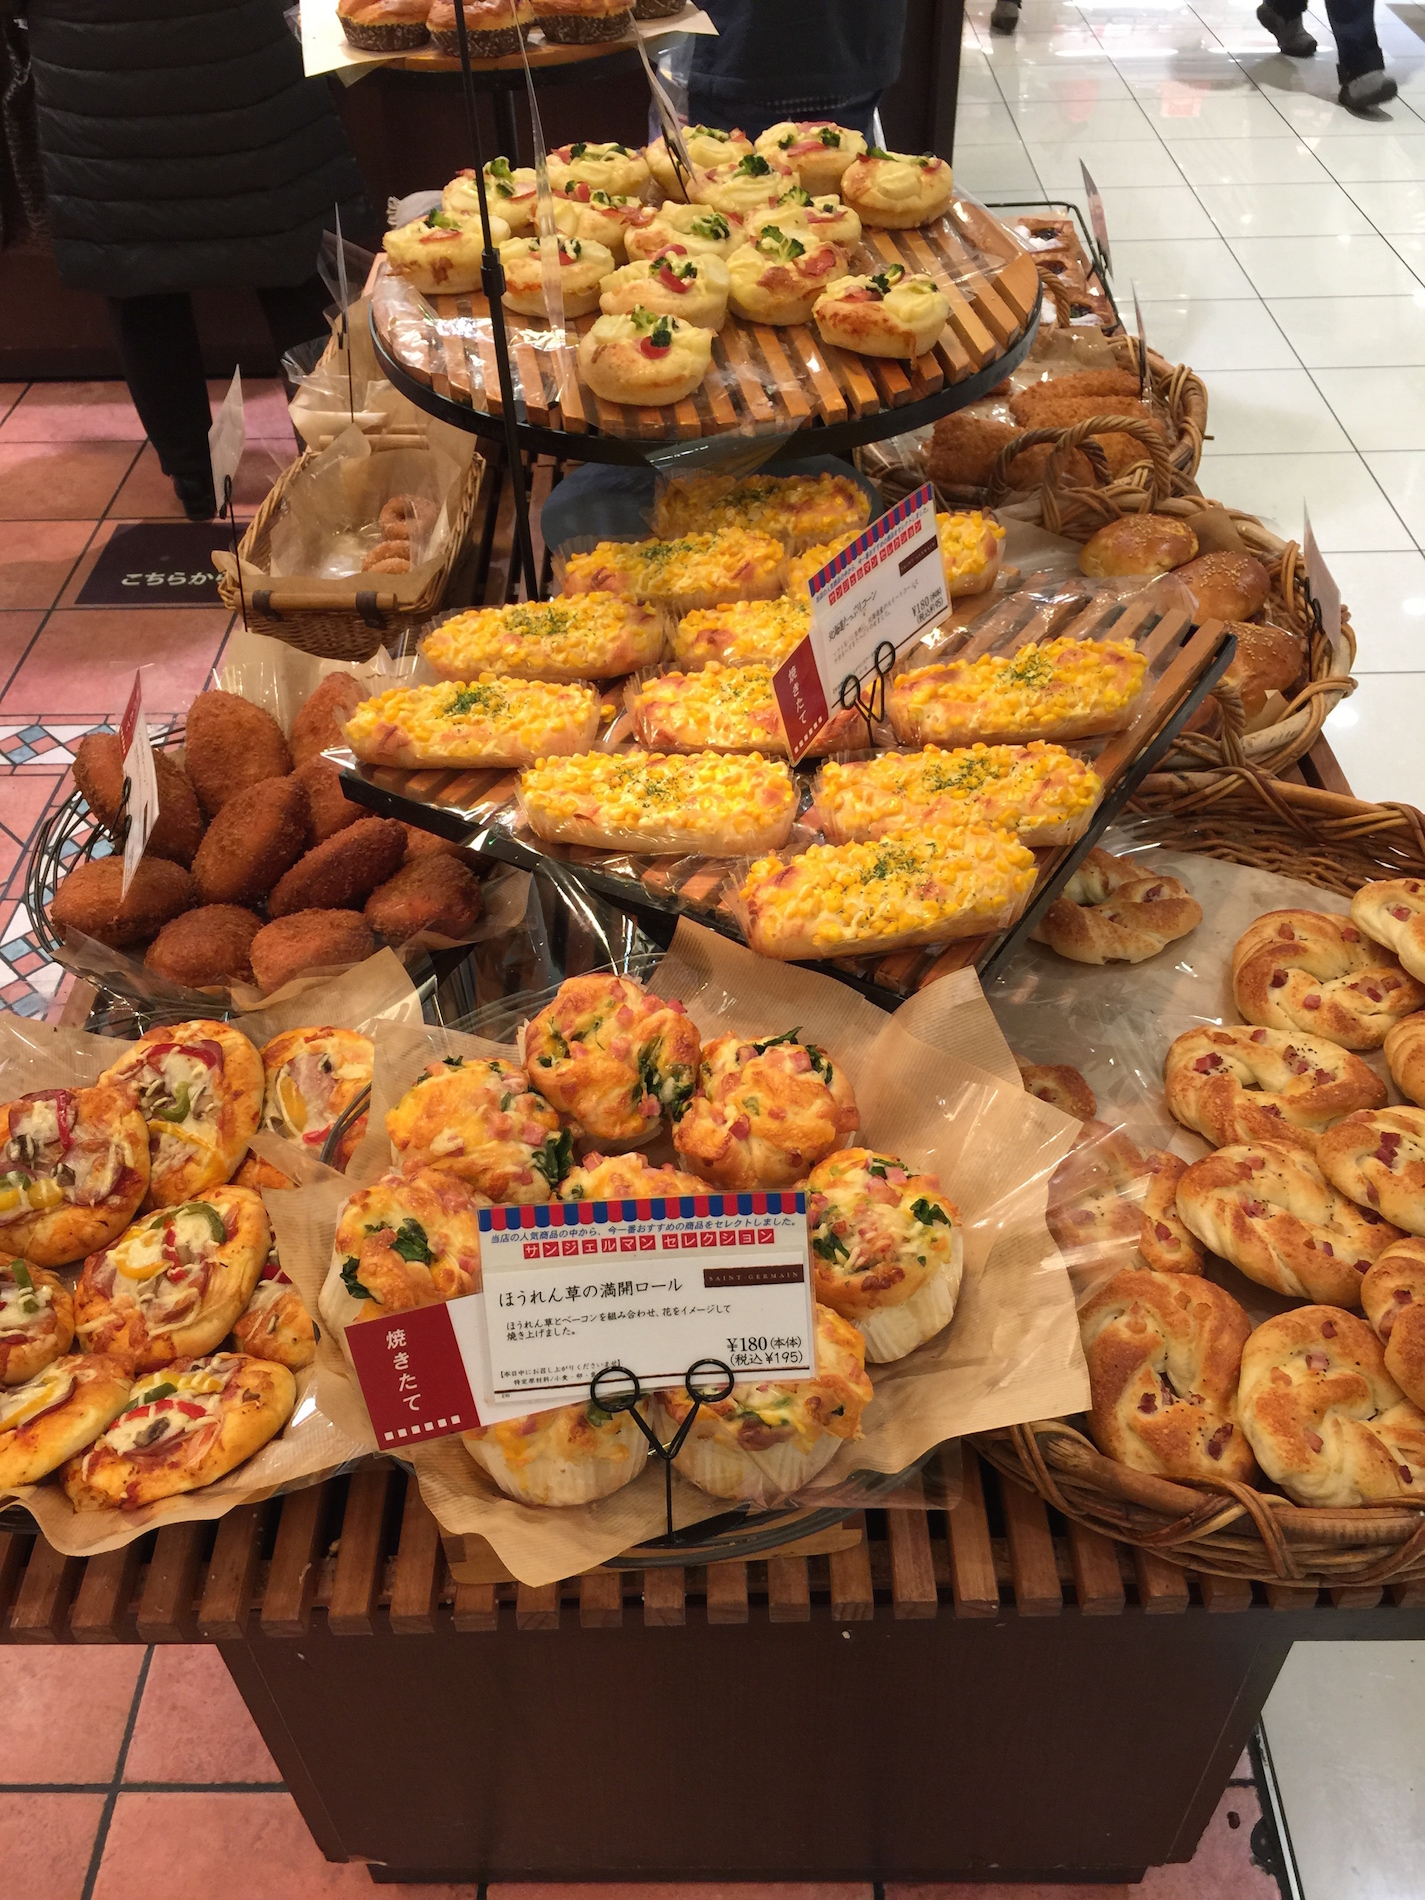 Pastries grocery store